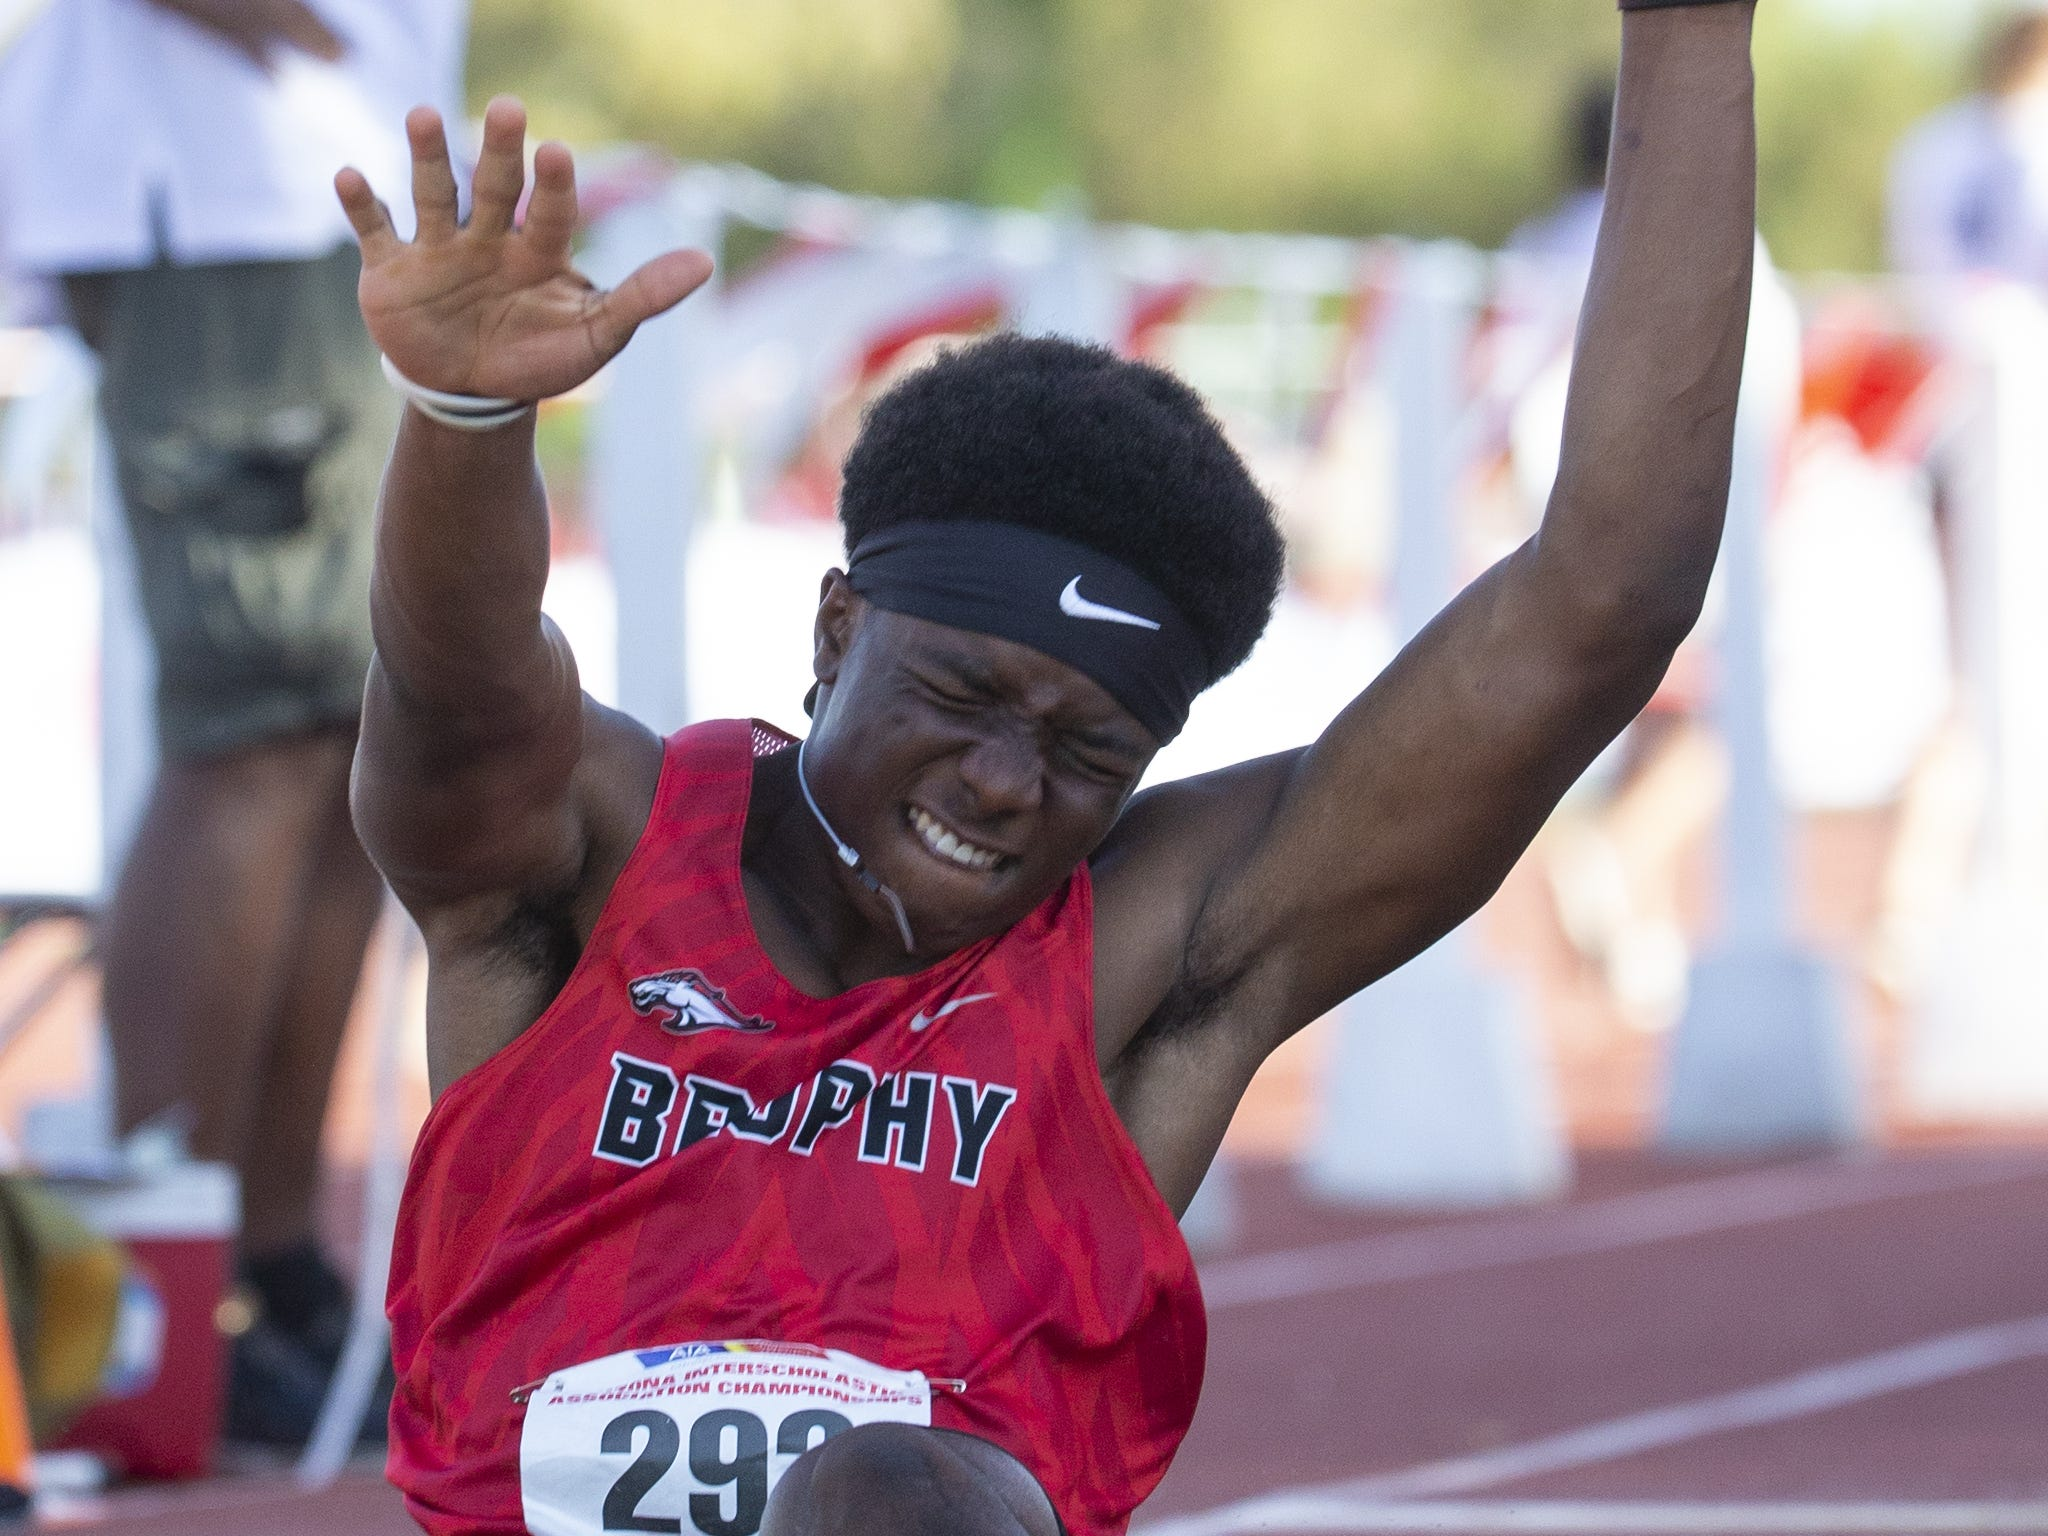 Trophy's Emeka Ogbonna competes in Boys long jump Div. I during the state track and field meet at Mesa Community college on May 1, 2019.